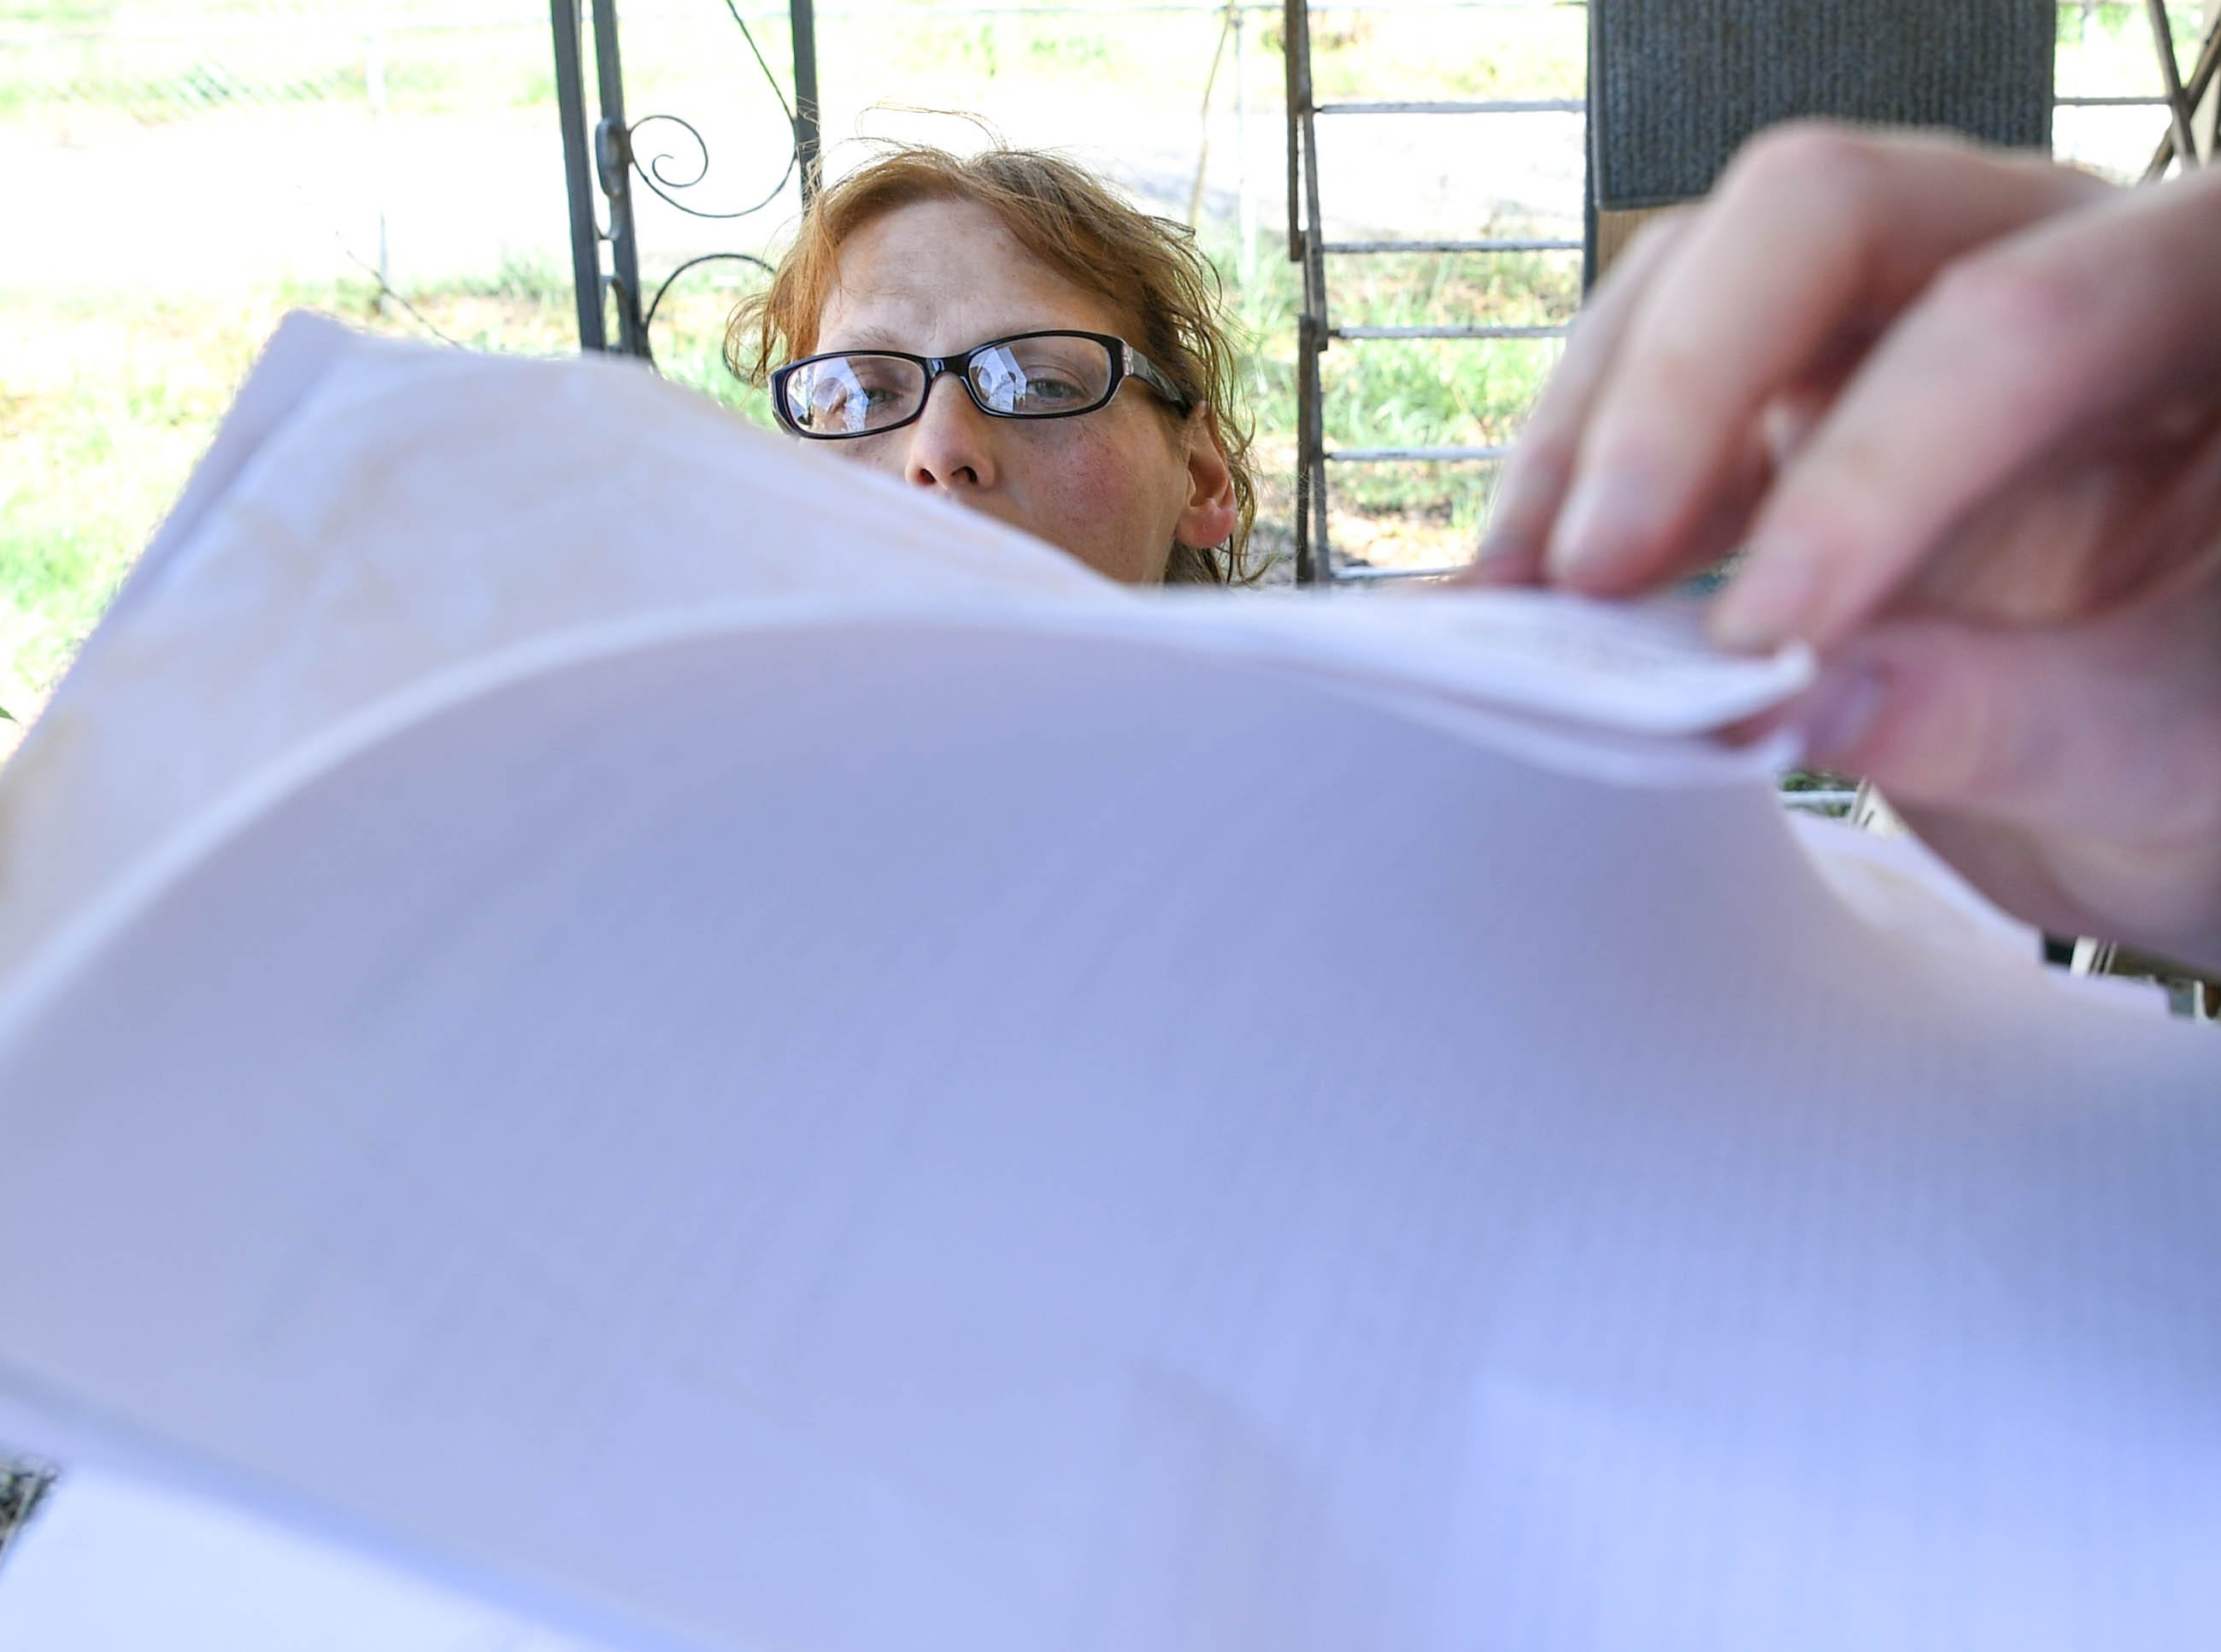 Kristy Drees of Anderson sits near her son Donald flipping through documents of recent water bills from Homeland Park Water Company in Anderson in March. She didn't expect her water bill in Homeland Park to exceed the typical monthly bill around $40 to $50. The problems with the water company and courtroom battles with her landlord while being unemployed she says is stressful.